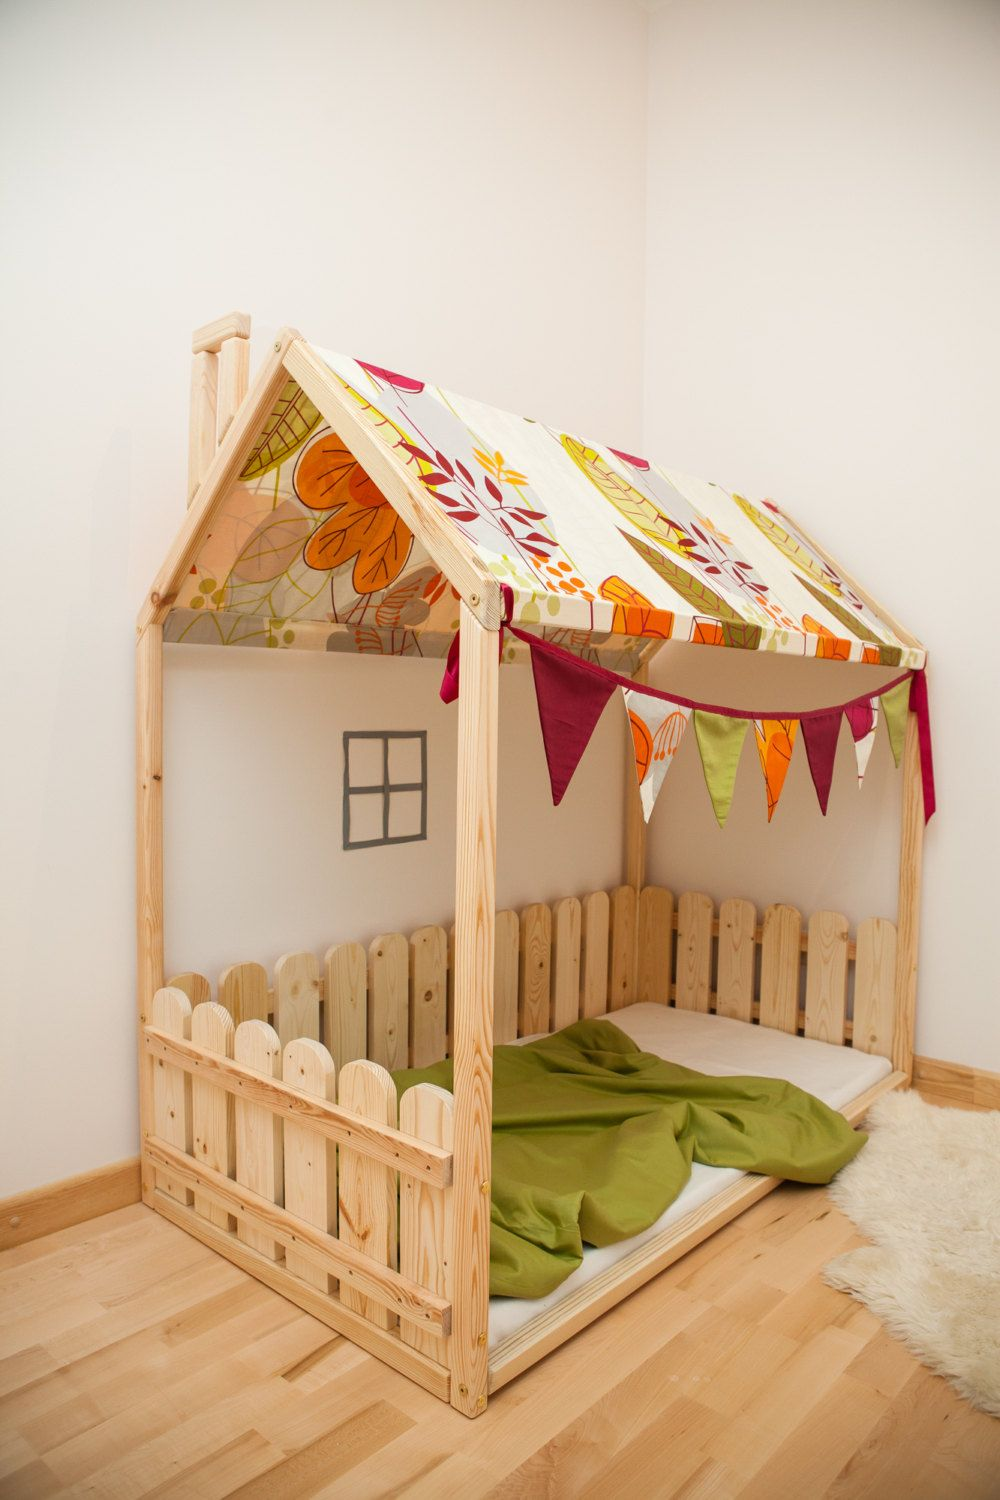 house shaped bed montessori bed or toddler bed floor bed full rh pinterest de